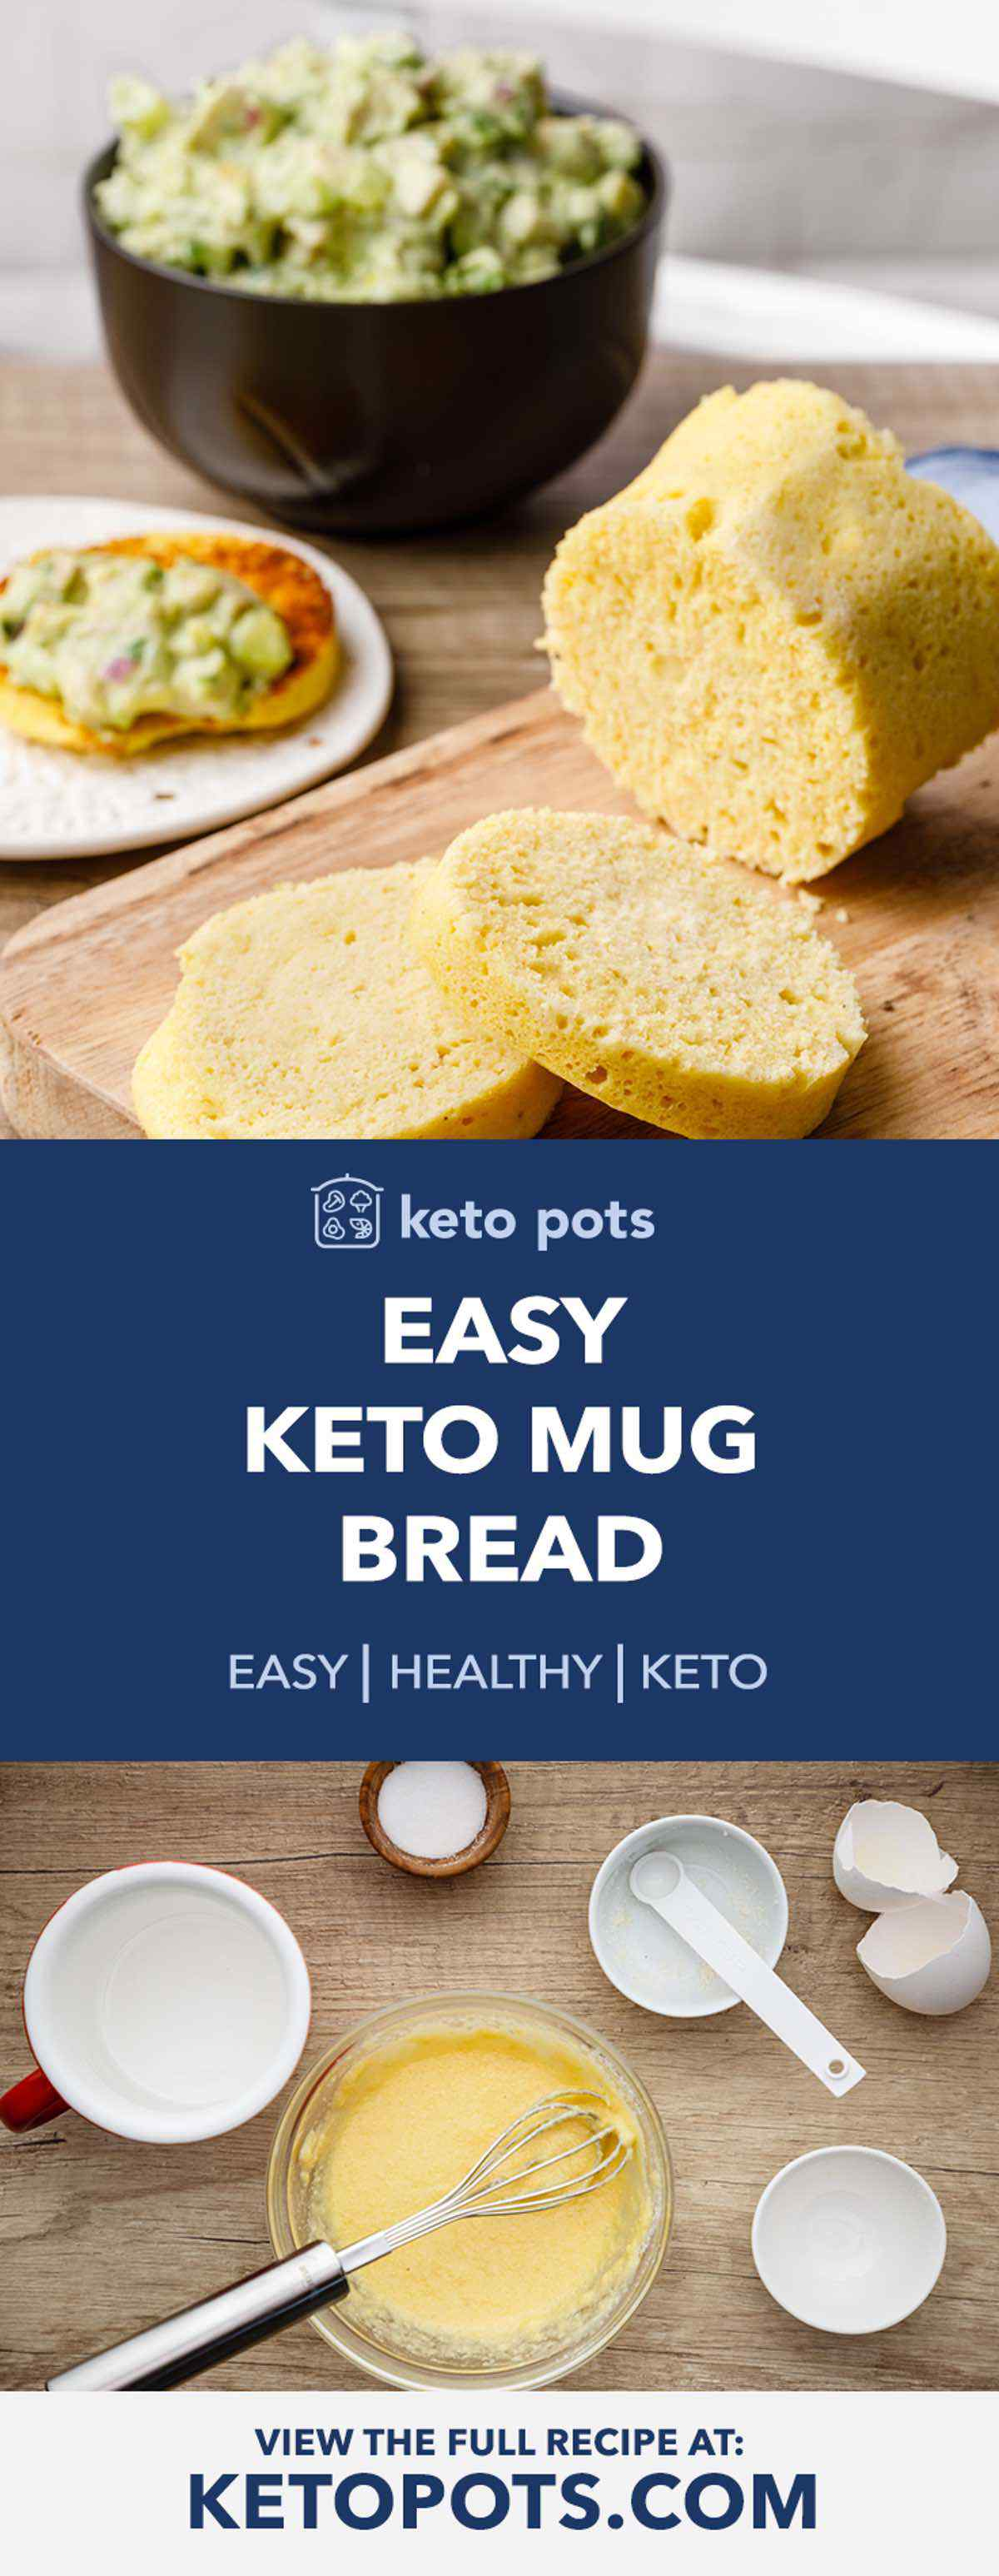 Easy Keto Mug Bread